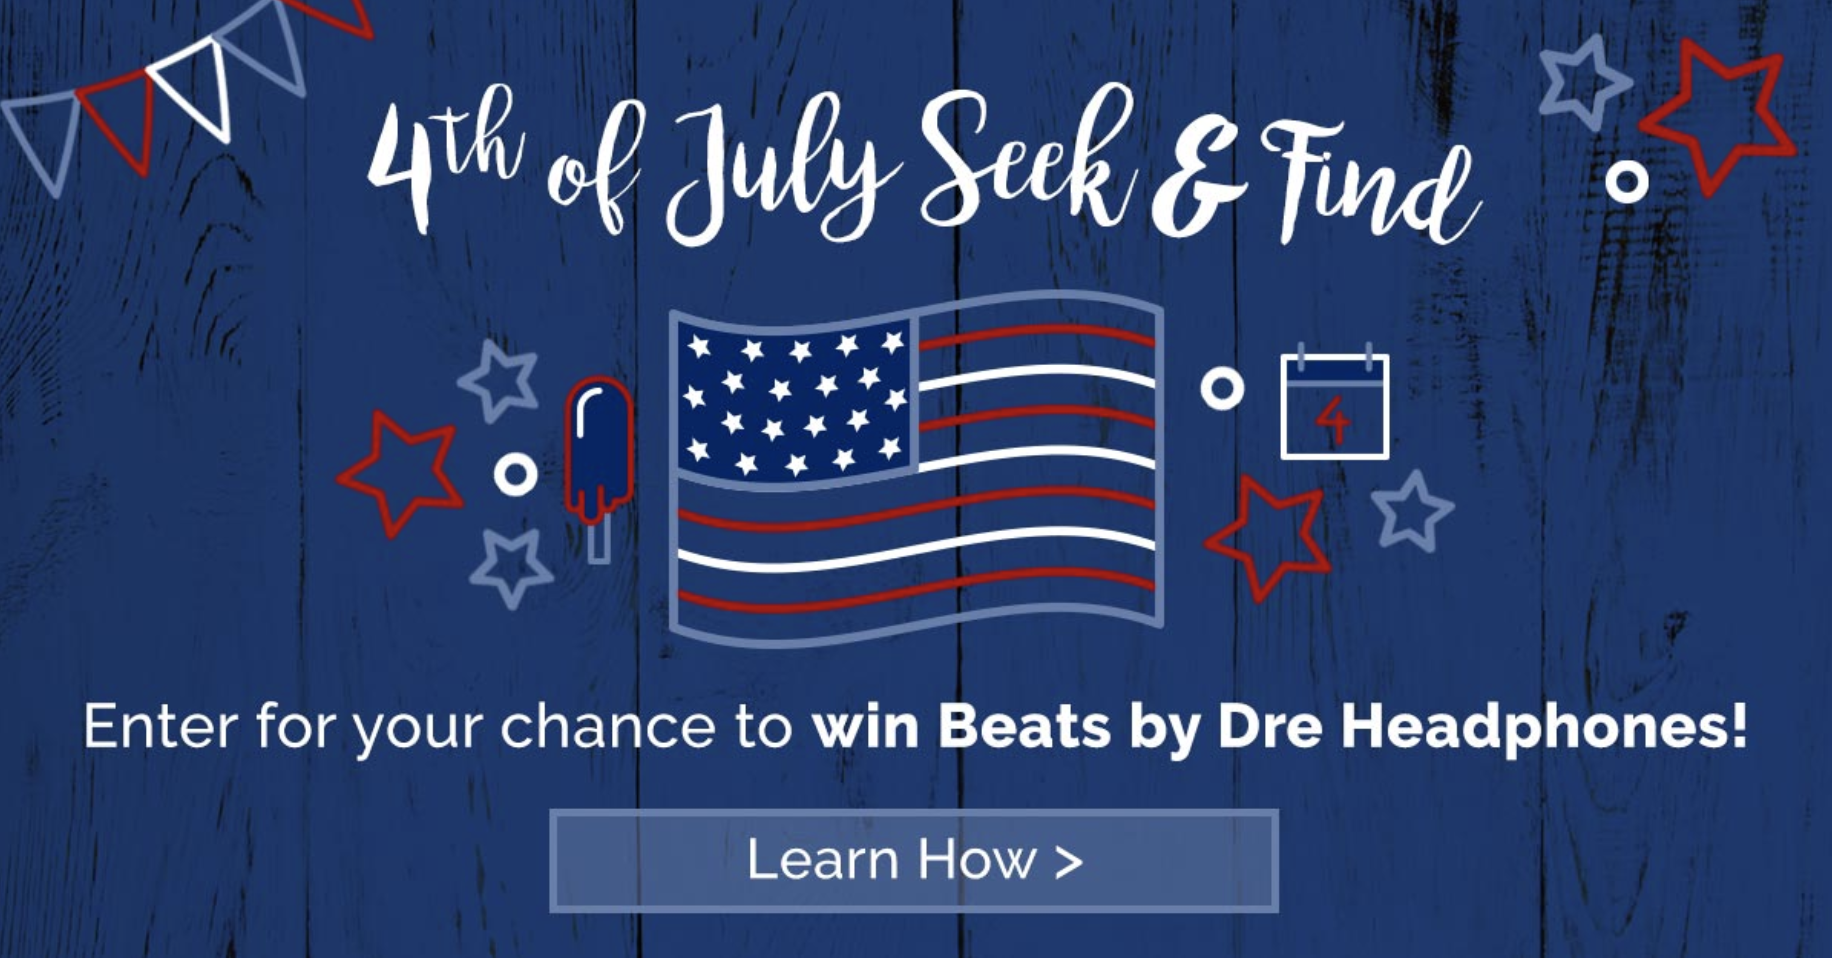 4th of july contest example